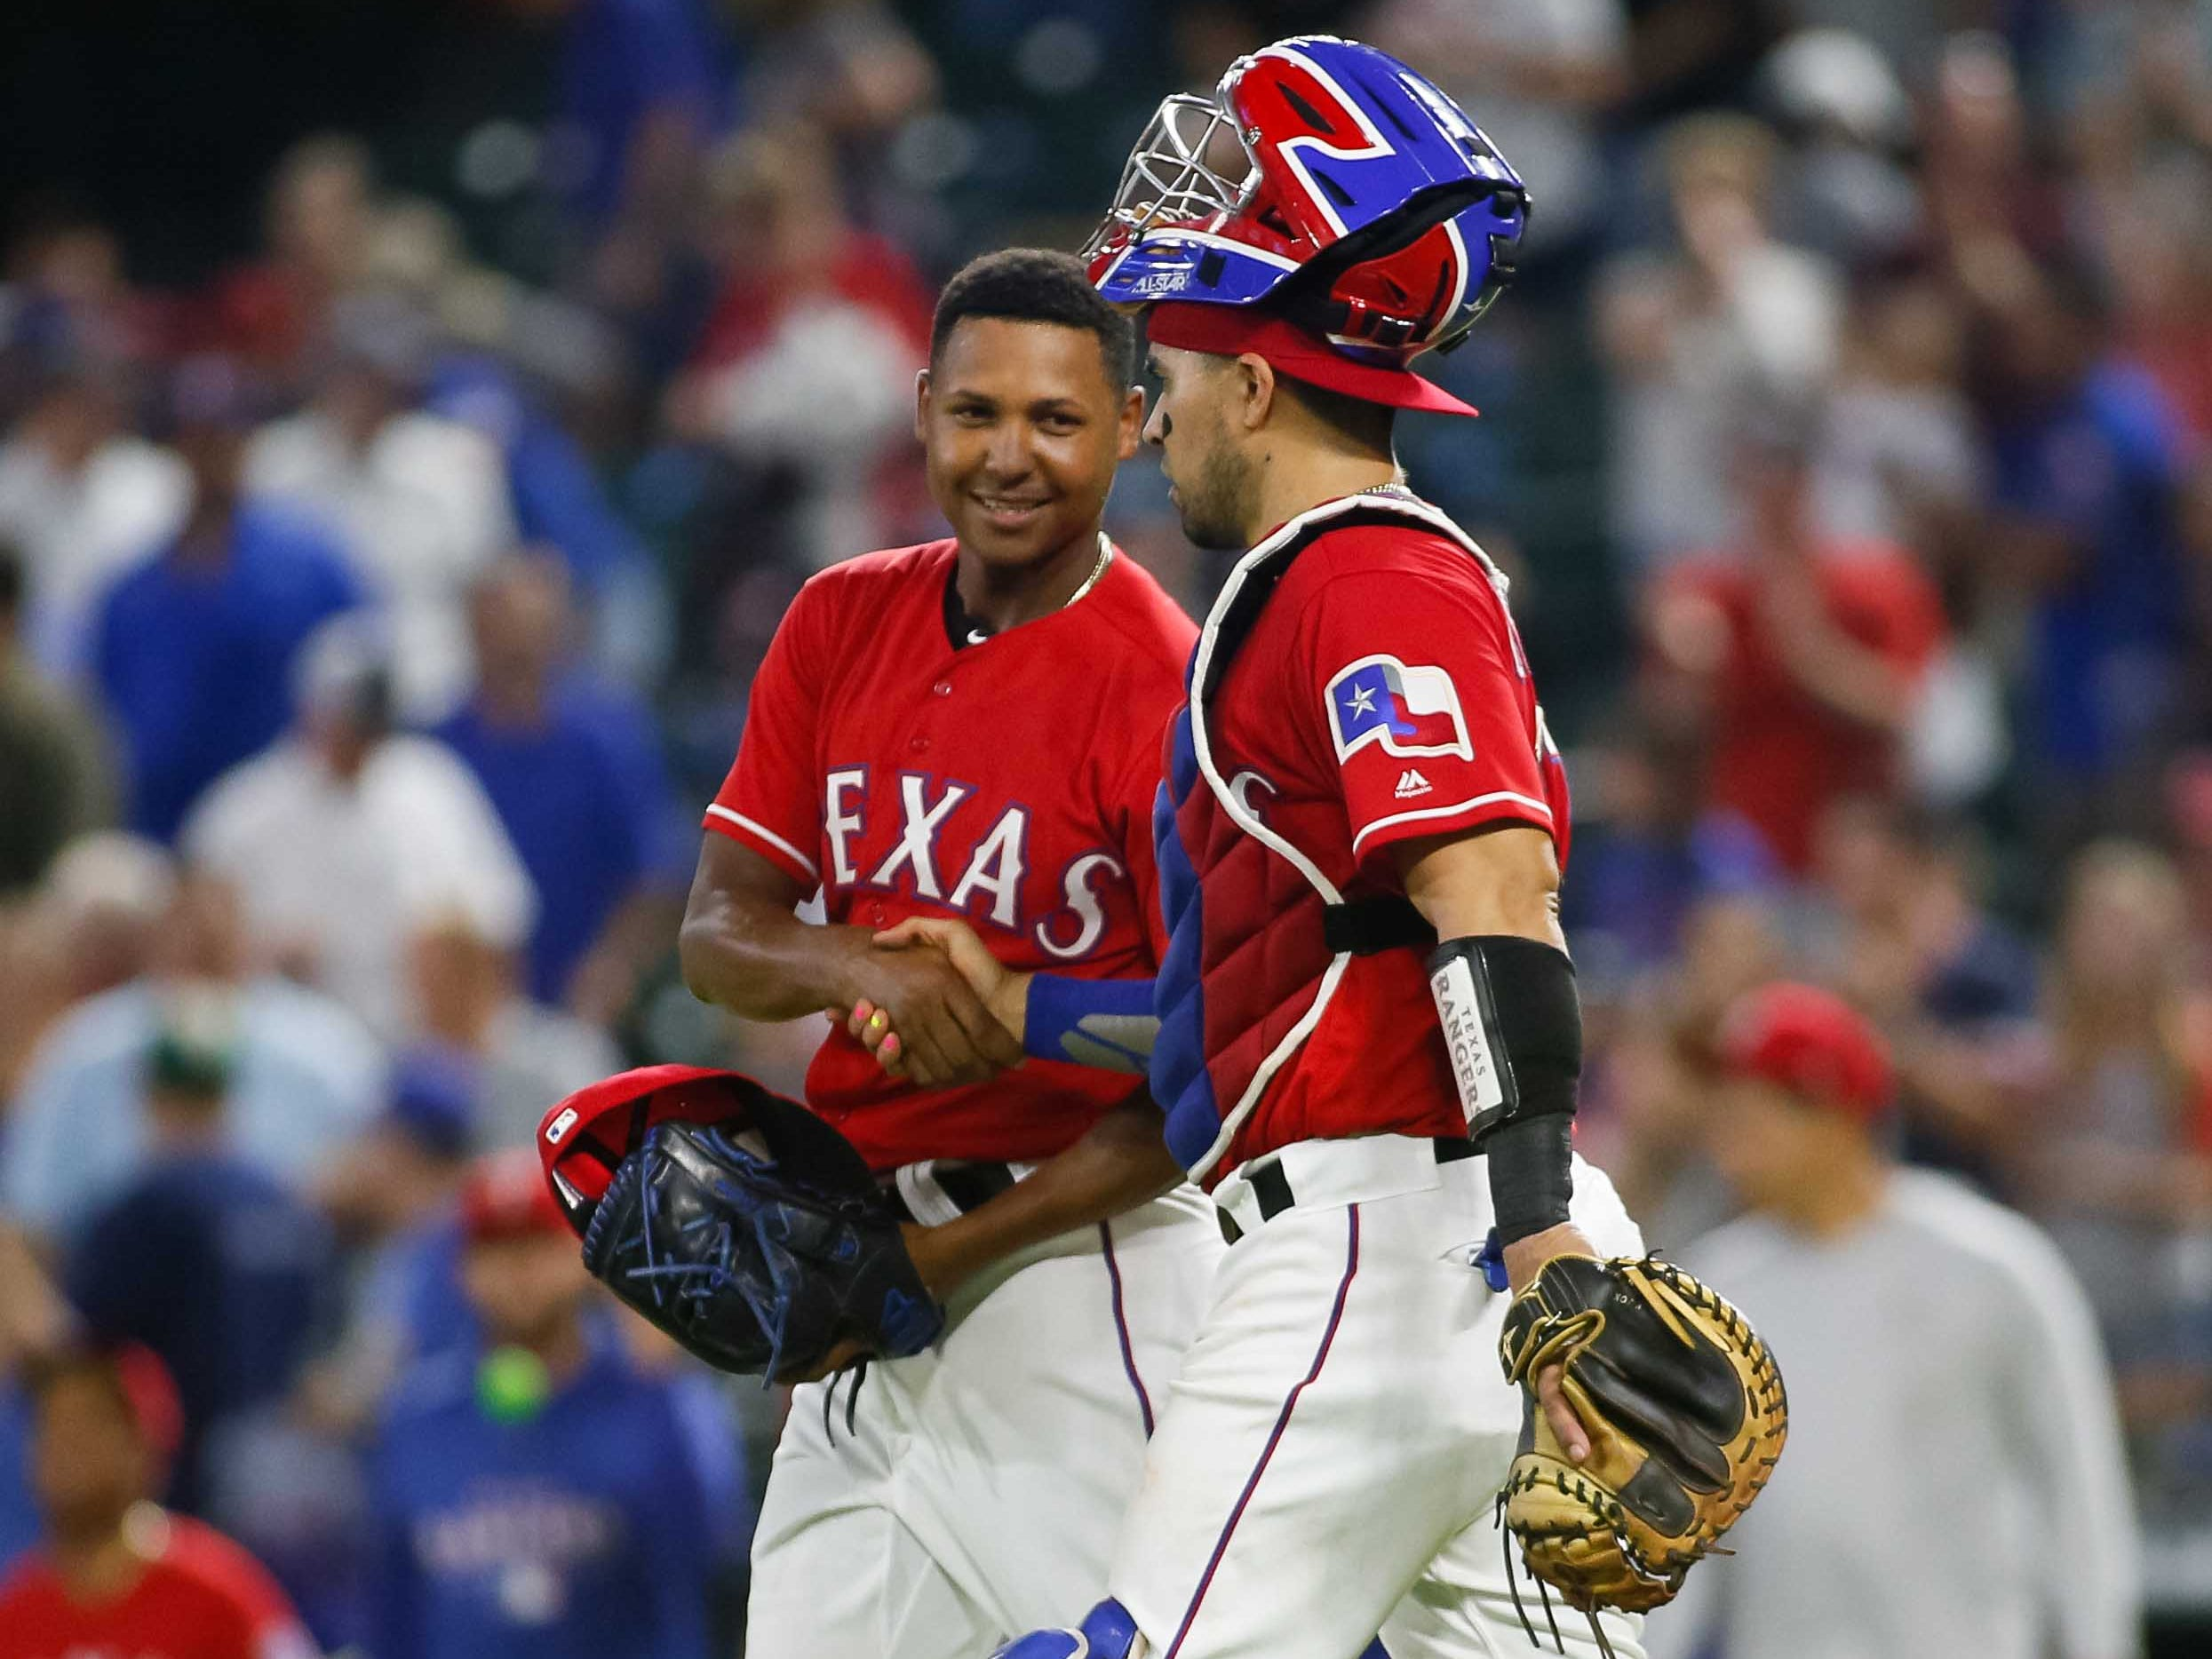 Aug 13, 2018; Arlington, TX, USA; Texas Rangers relief pitcher Jose Leclerc (62) and catcher Robinson Chirinos (61) react following the game against the Arizona Diamondbacks at Globe Life Park in Arlington. Mandatory Credit: Ray Carlin-USA TODAY Sports